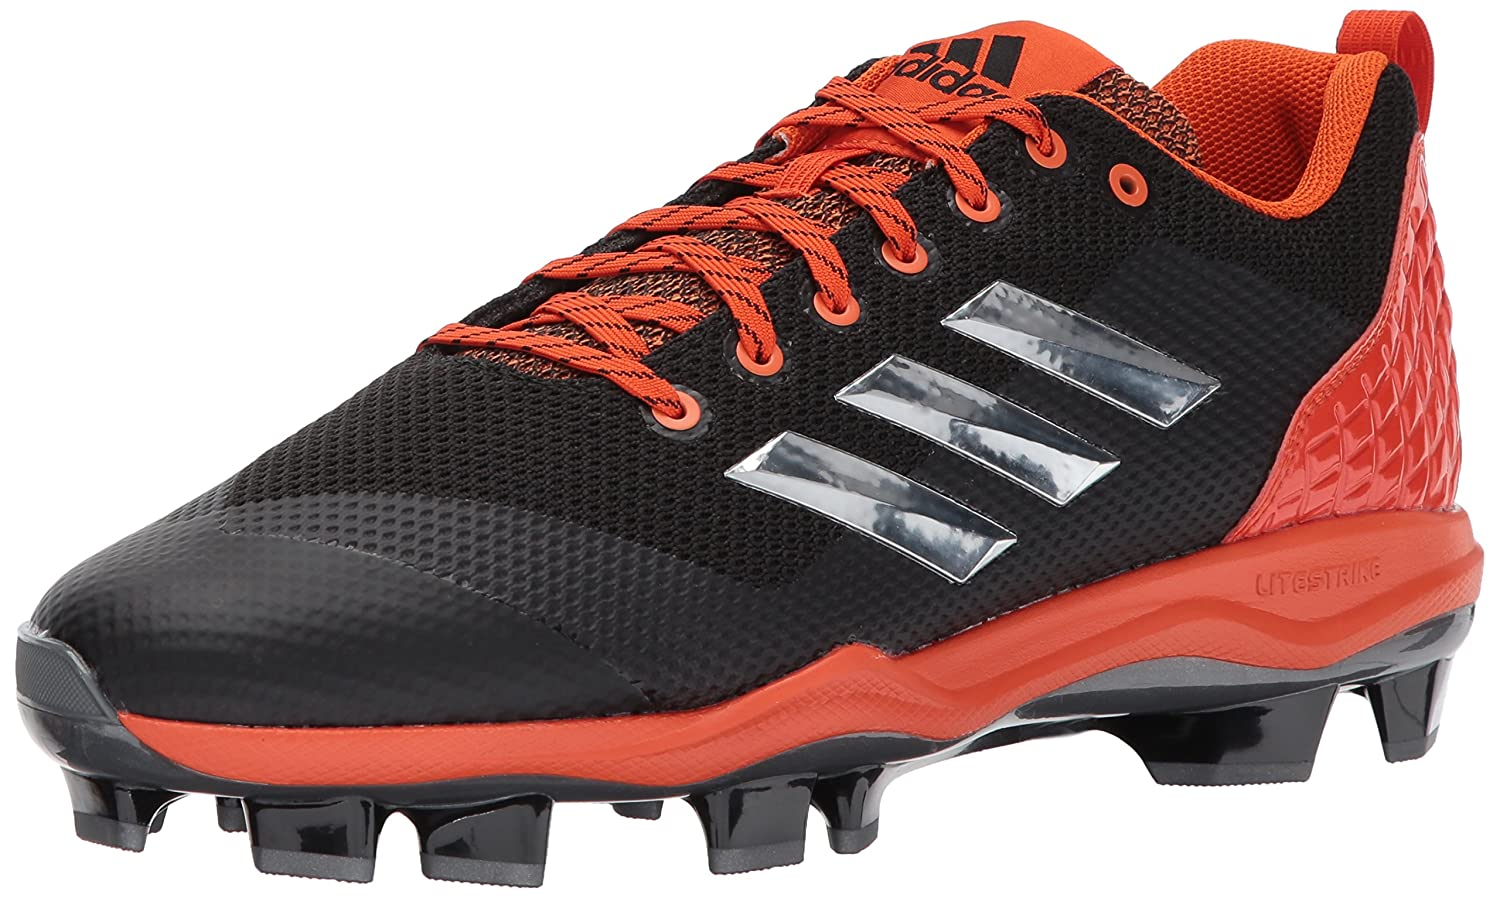 adidas Performance メンズ PowerAlley 5 TPU B01N0T3E1E 14 Medium US|Black/Metallic Silver/Collegiate Orange Black/Metallic Silver/Collegiate Orange 14 Medium US